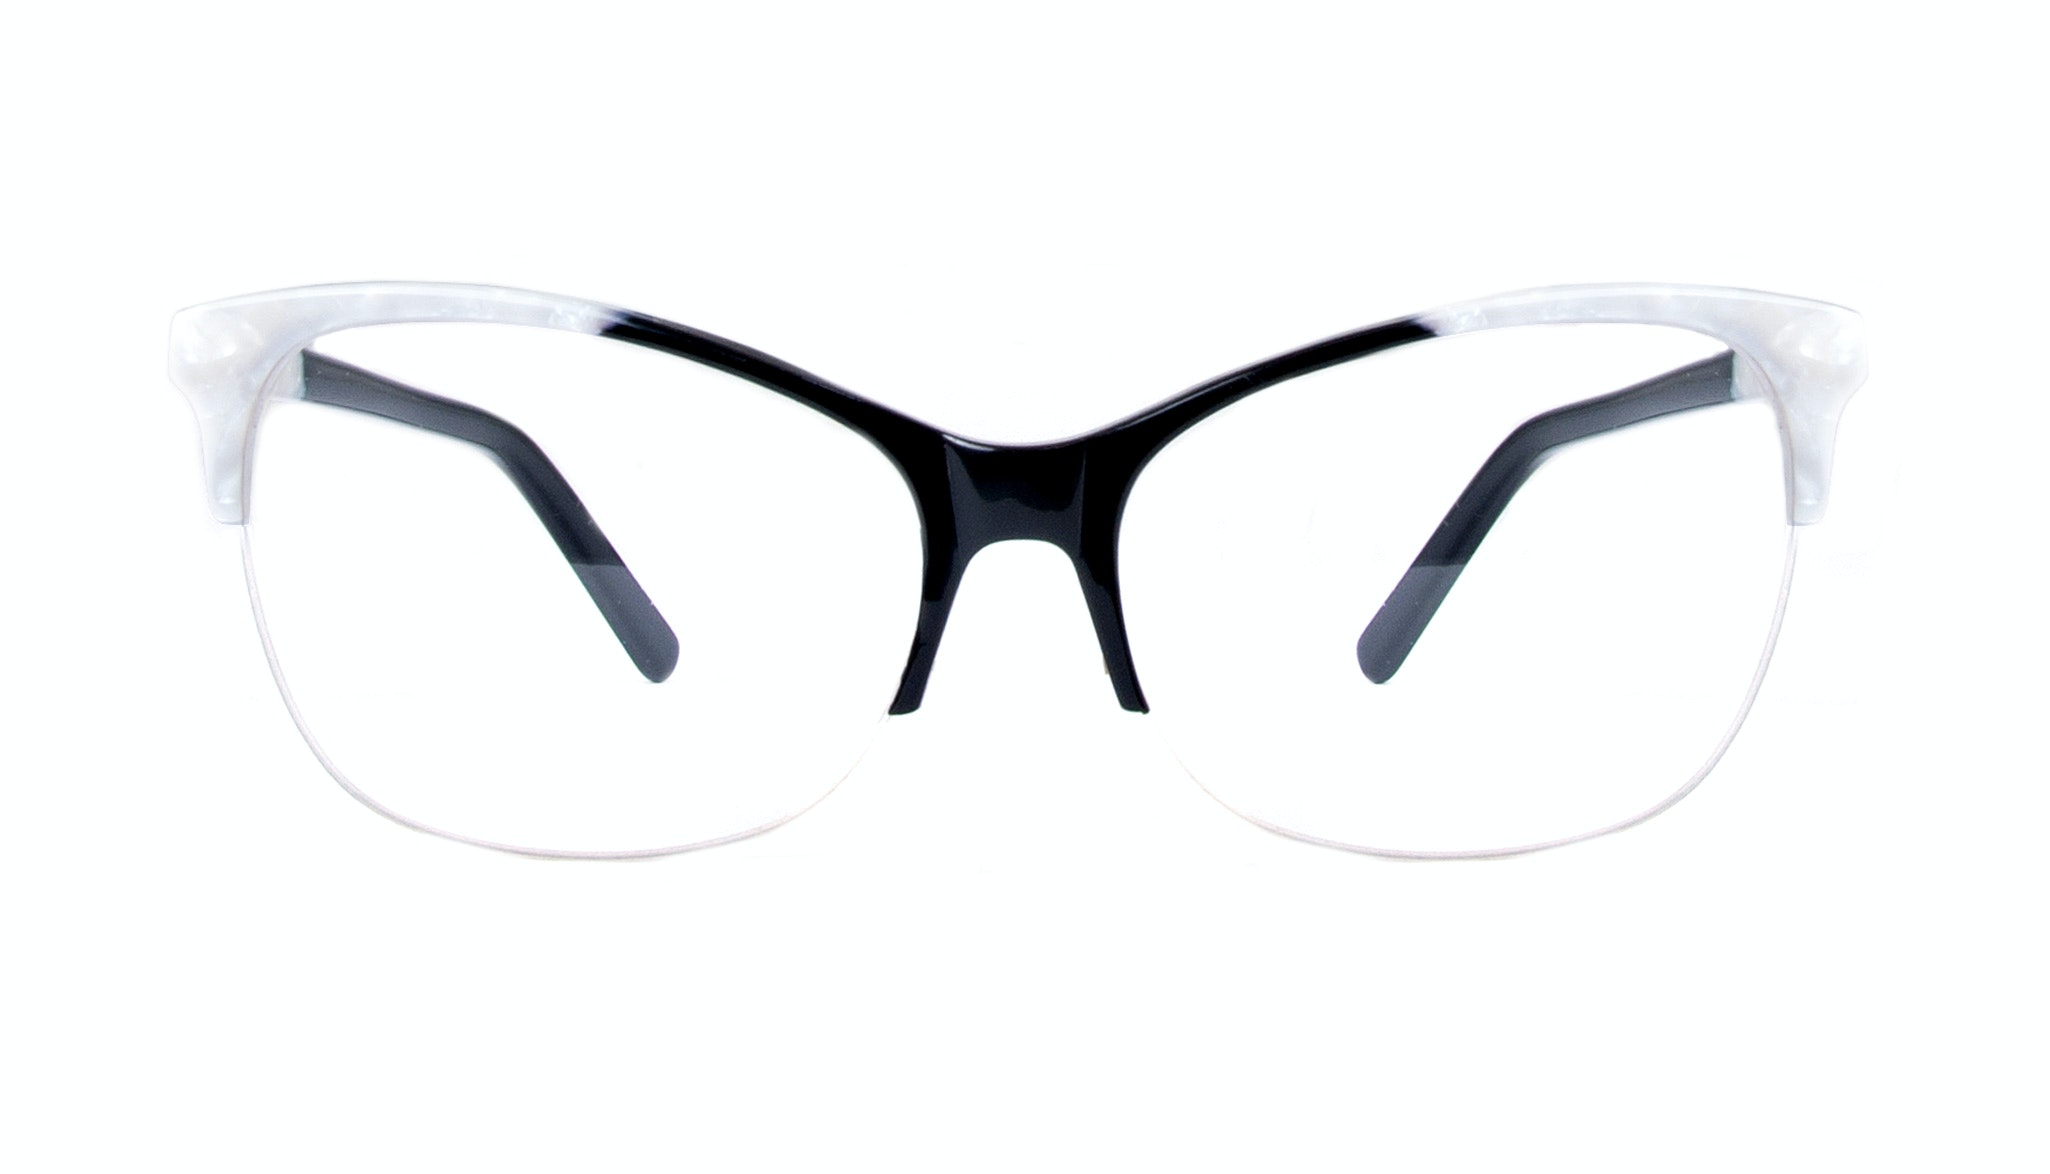 Affordable Fashion Glasses Cat Eye Rectangle Semi-Rimless Eyeglasses Women Flair Light Onyx Pearl